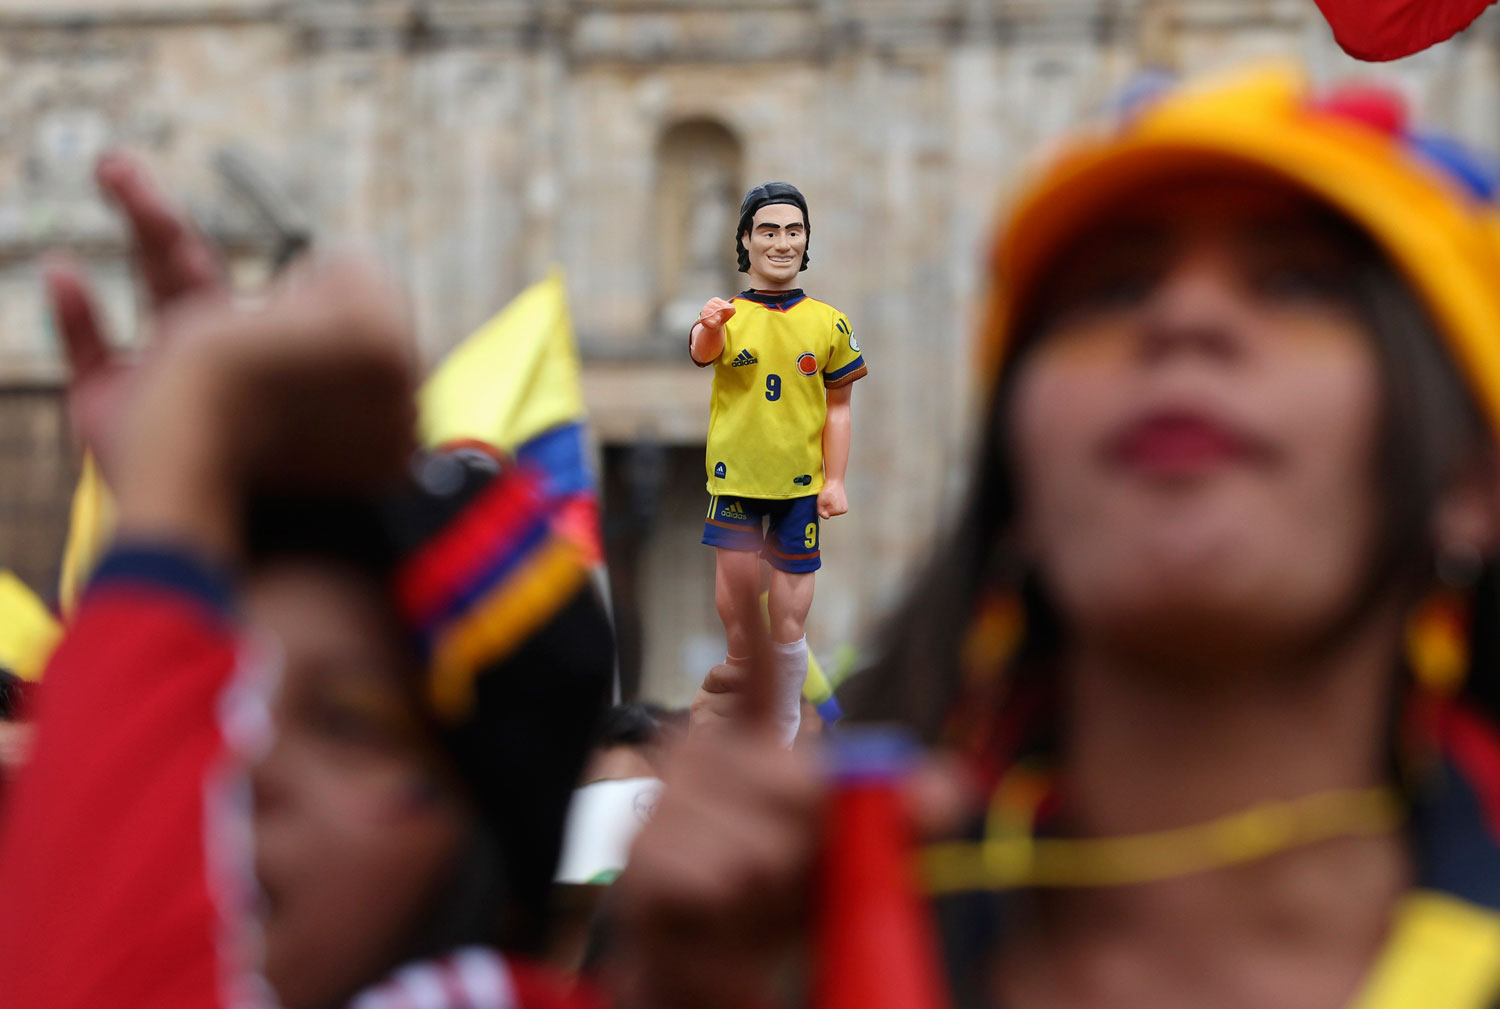 Colombia's fans hold a toy figurine of Colombia's national soccer player Falcao as they watch a broadcast of the game between Colombia and Uruguay, at Bolivar Square in Bogota on June 28, 2014.